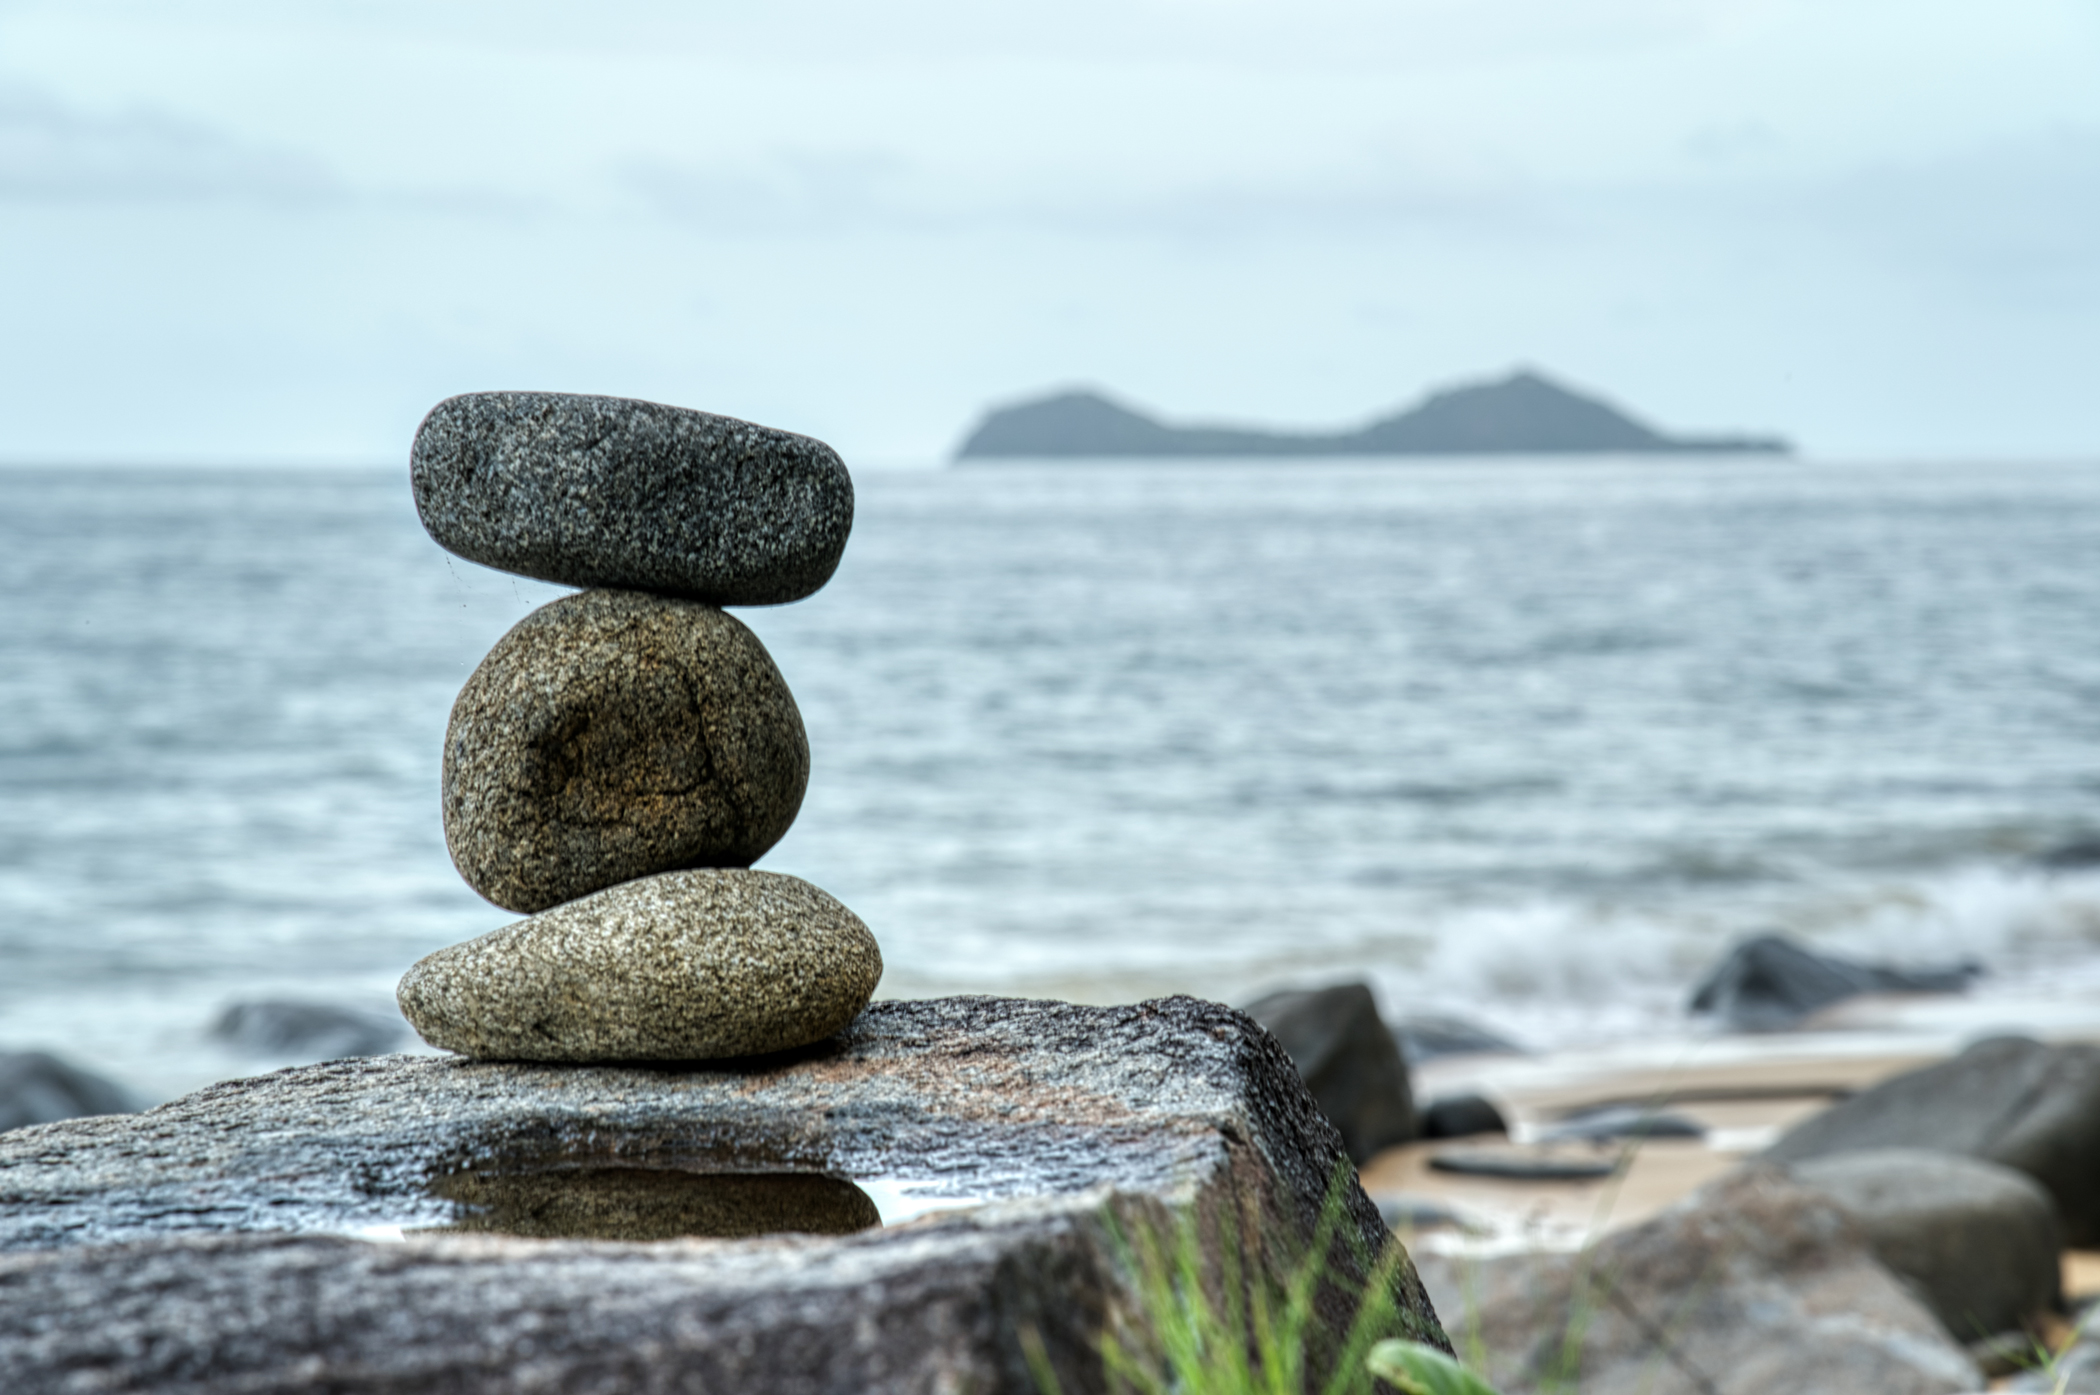 Someone visiting this isolated stretch of beach did this rockstacking.  I put one next to it.